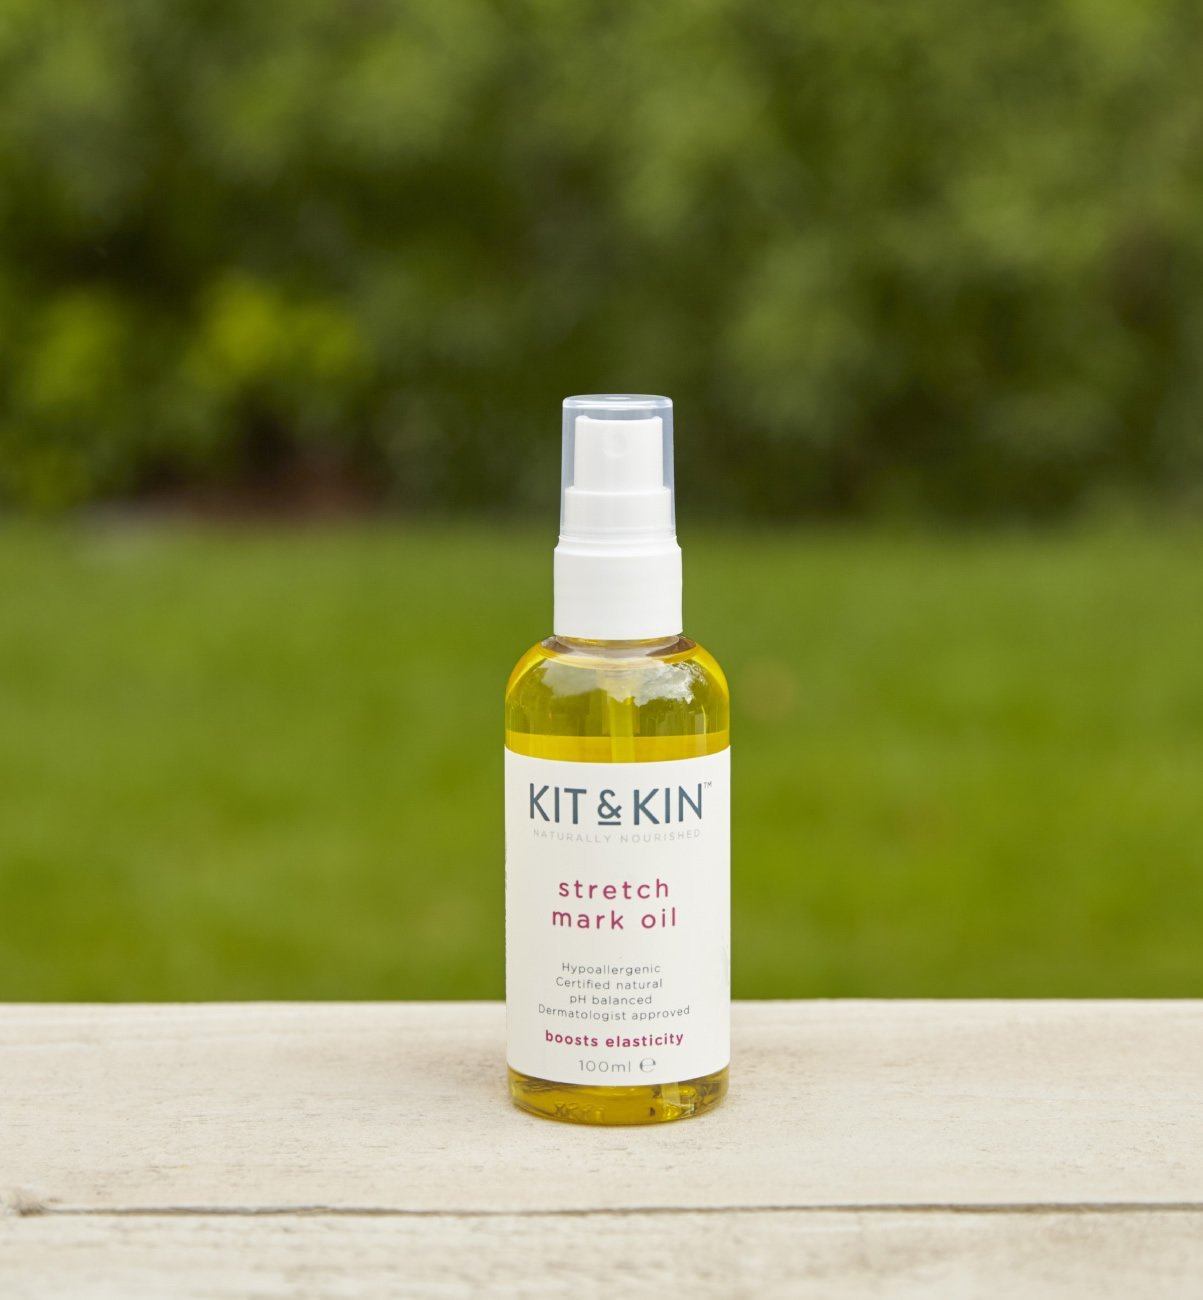 Naturally nourishing stretch mark oil